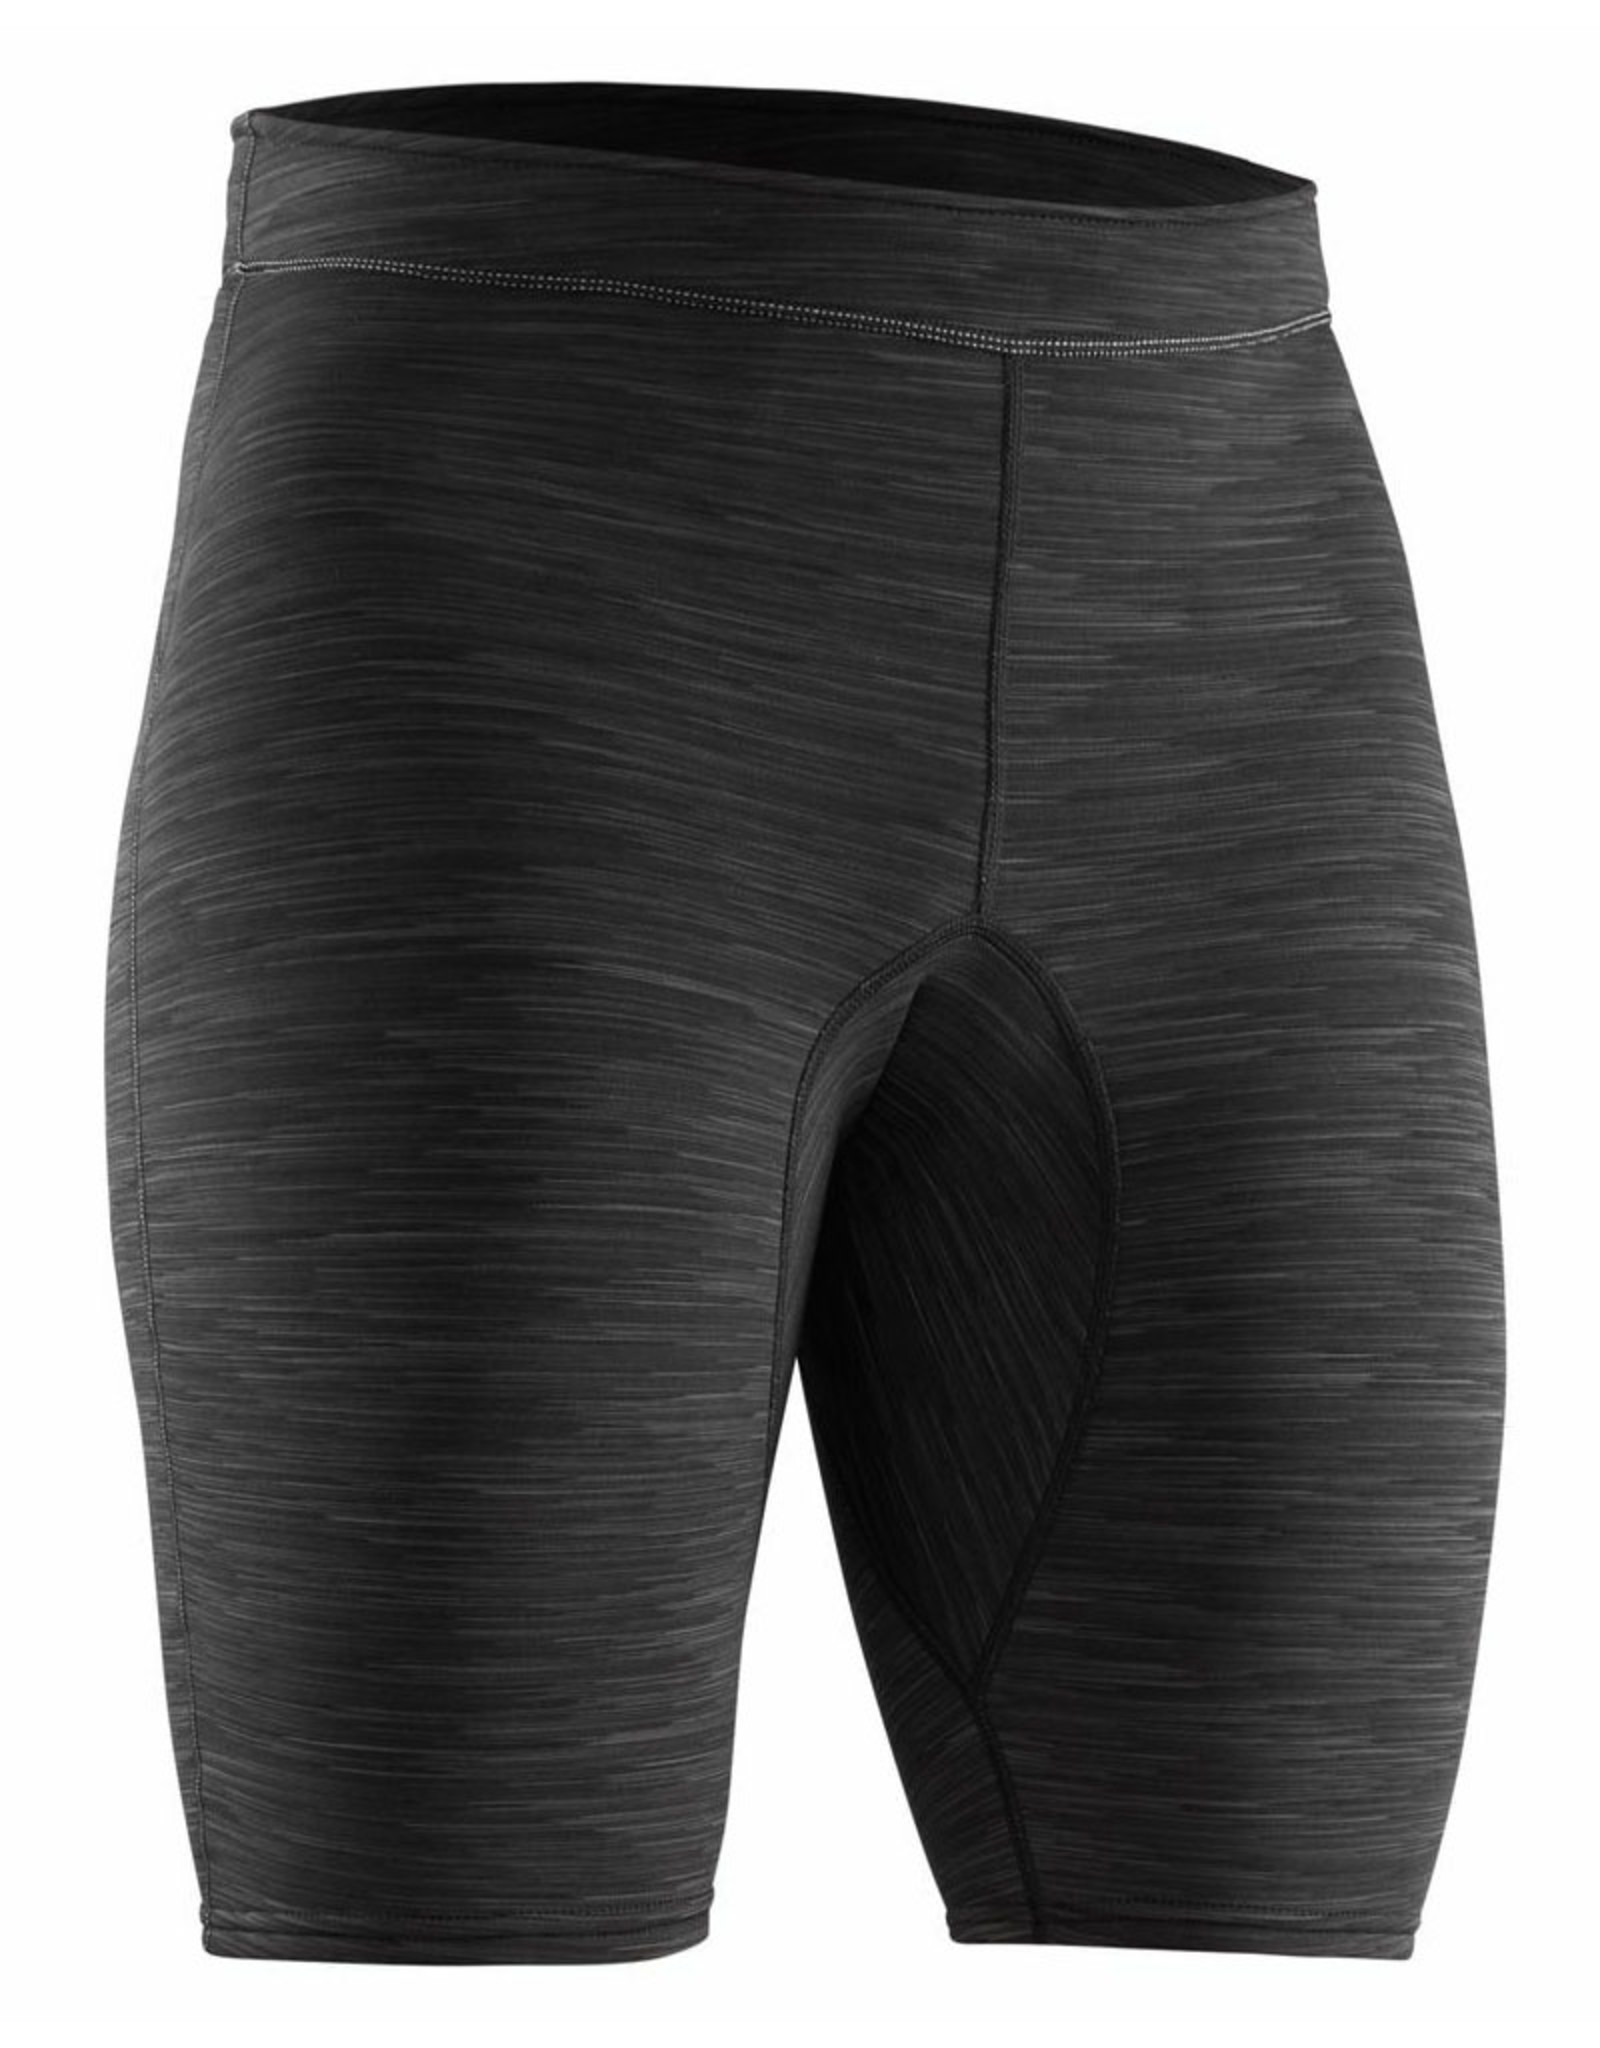 NRS NRS HydroSkin .5 Shorts Closeout- Men's